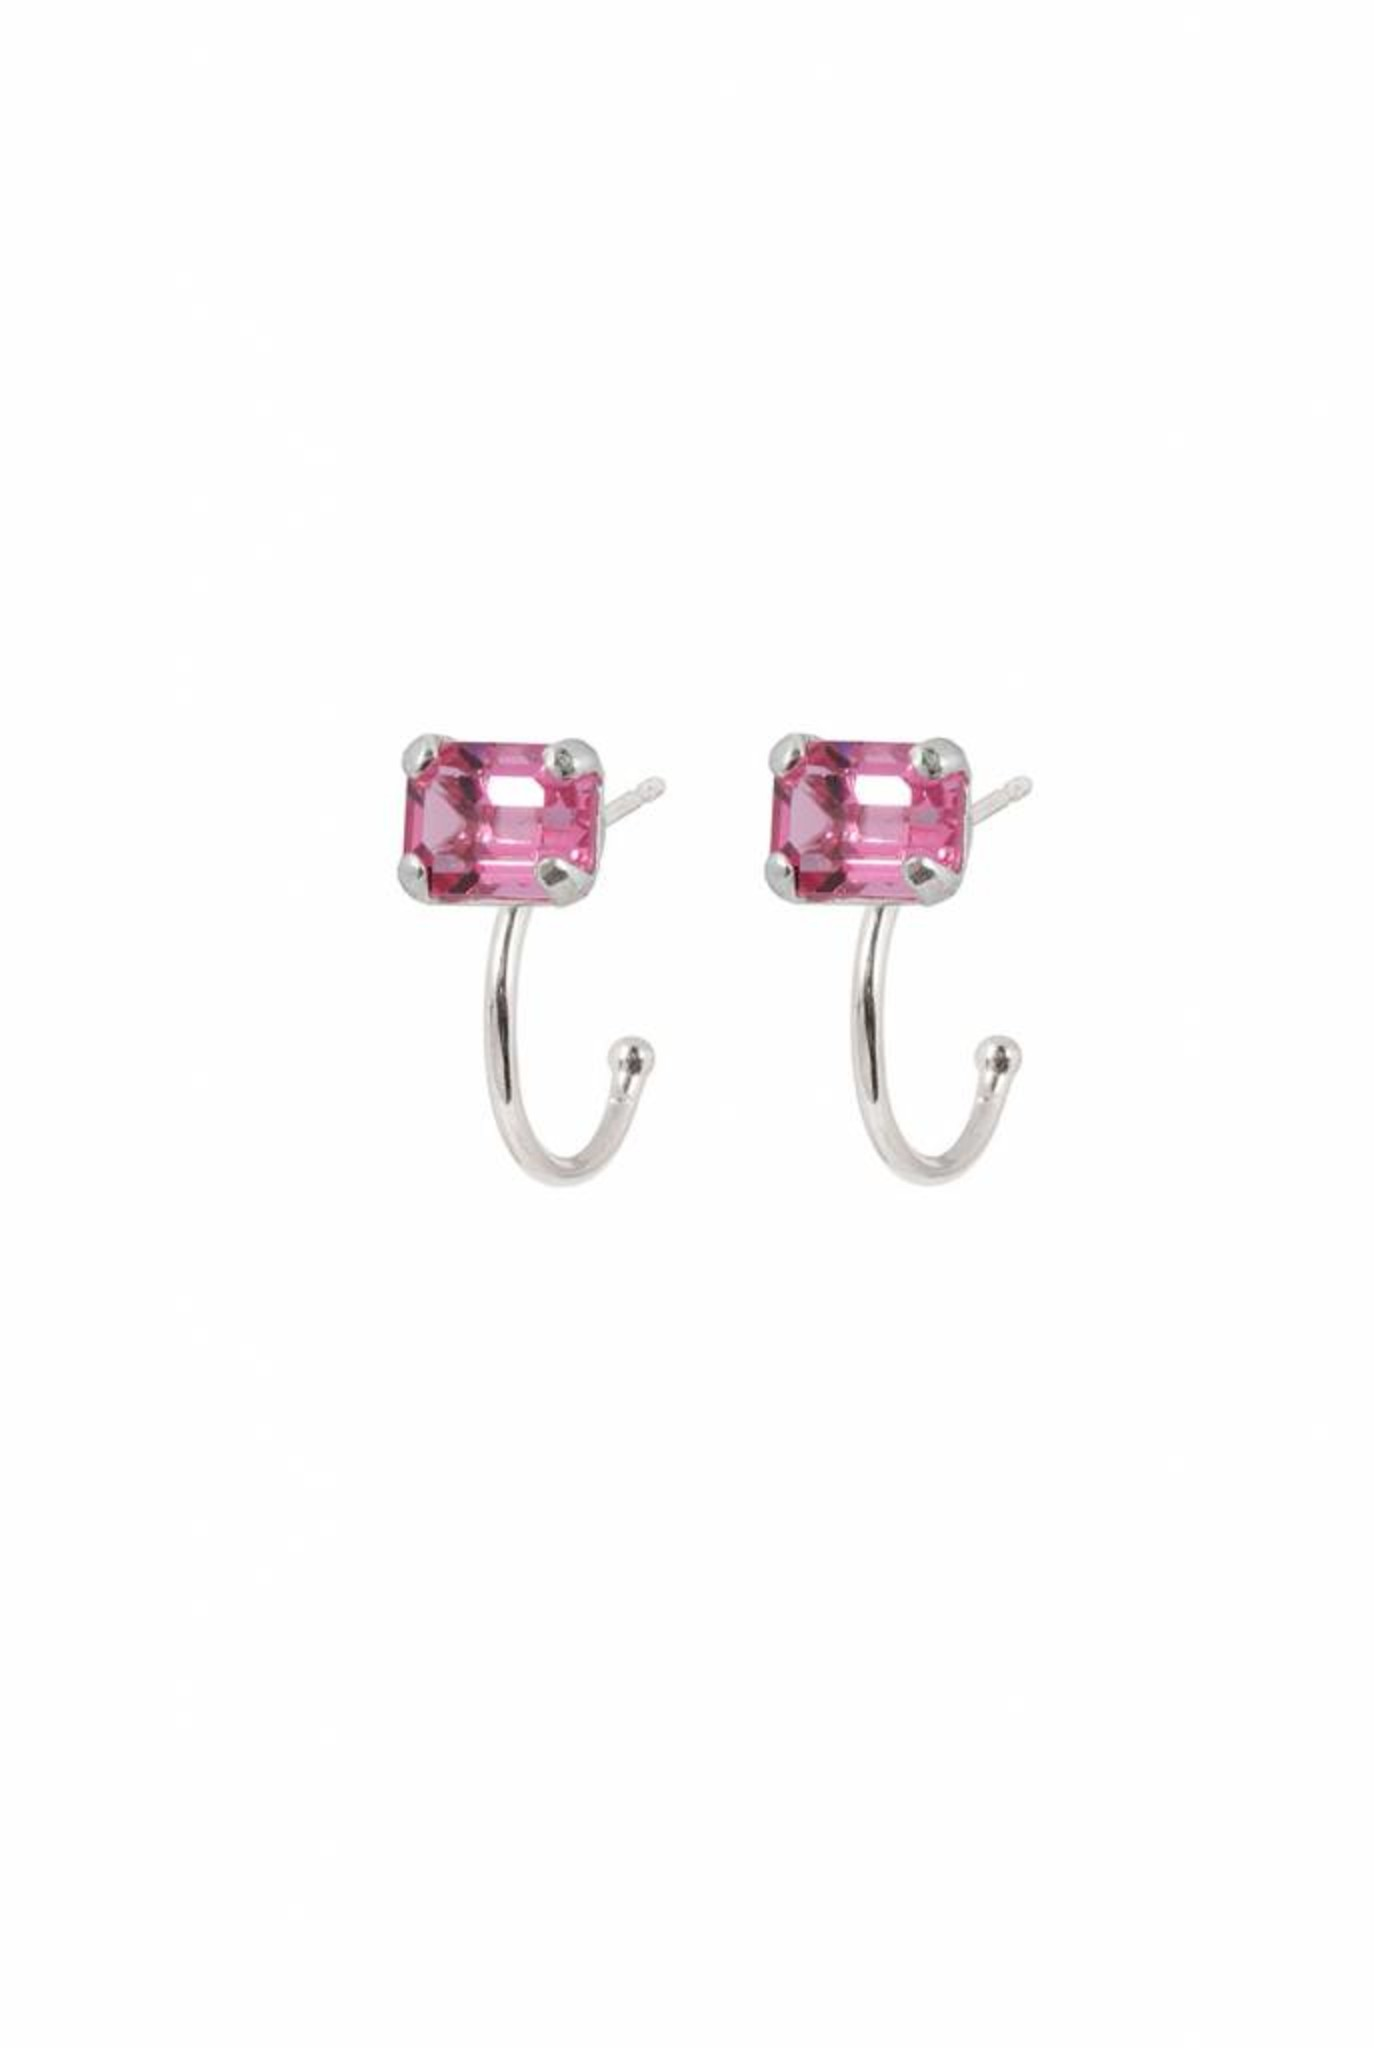 rose swarovski crystal hoops earrings silver